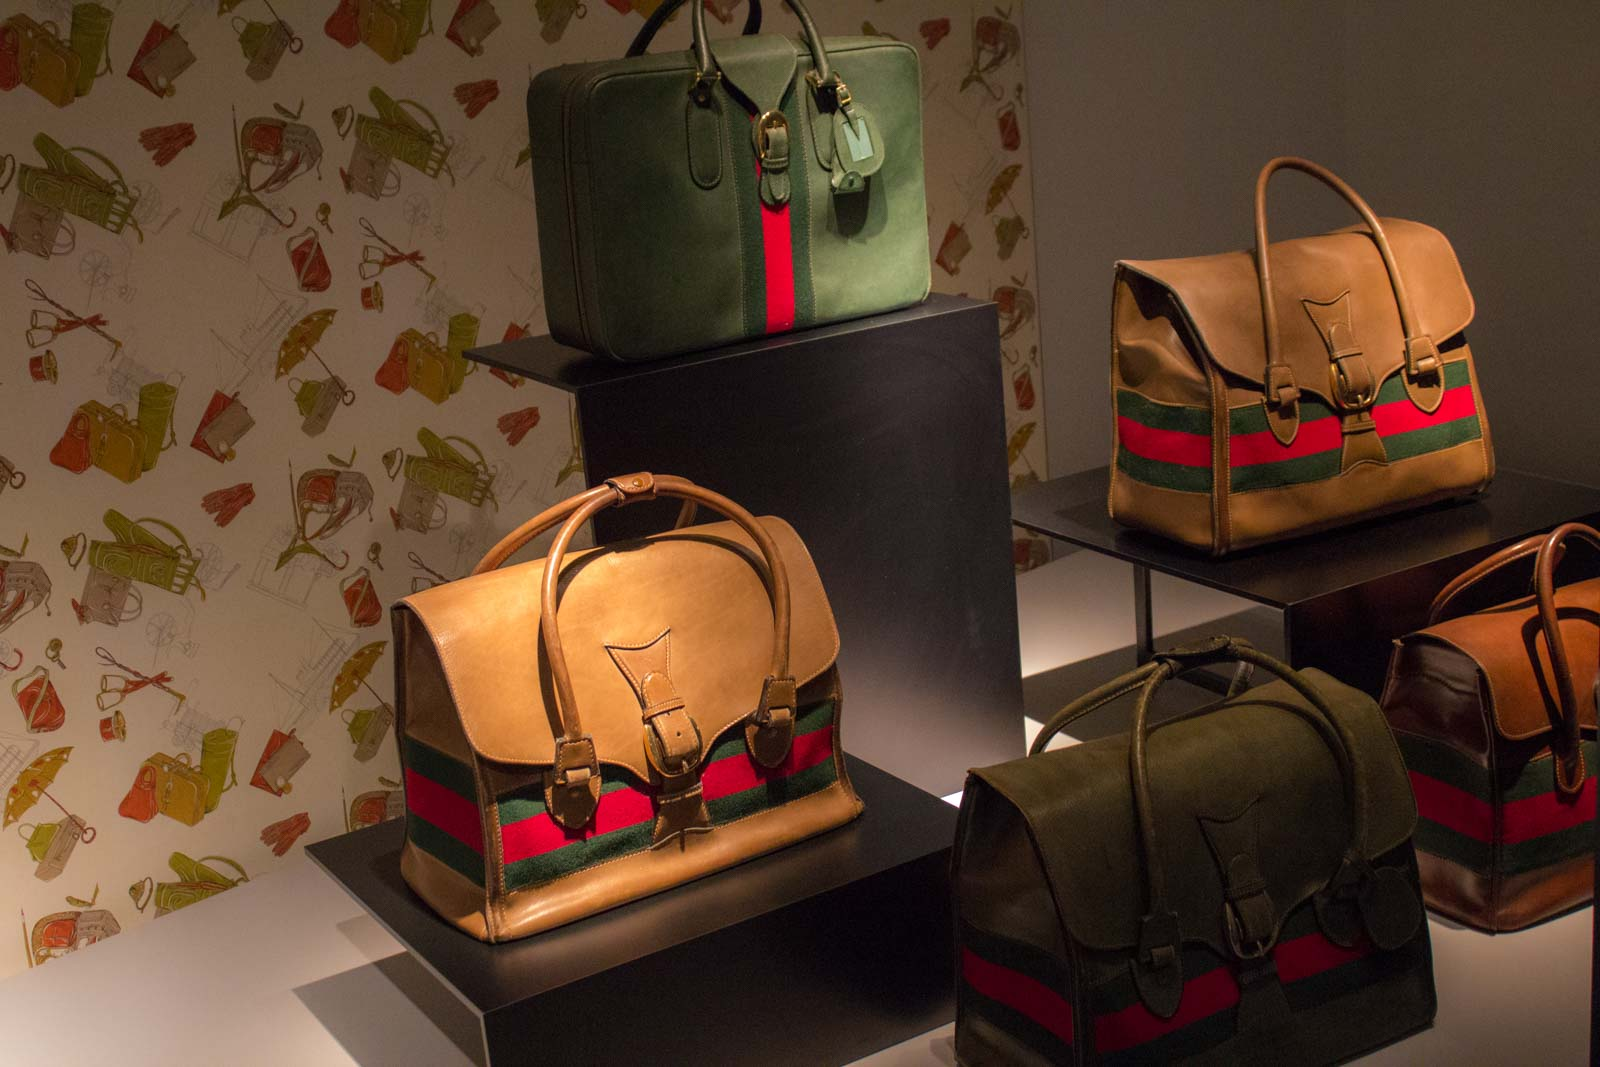 gucci museum, florence, italy